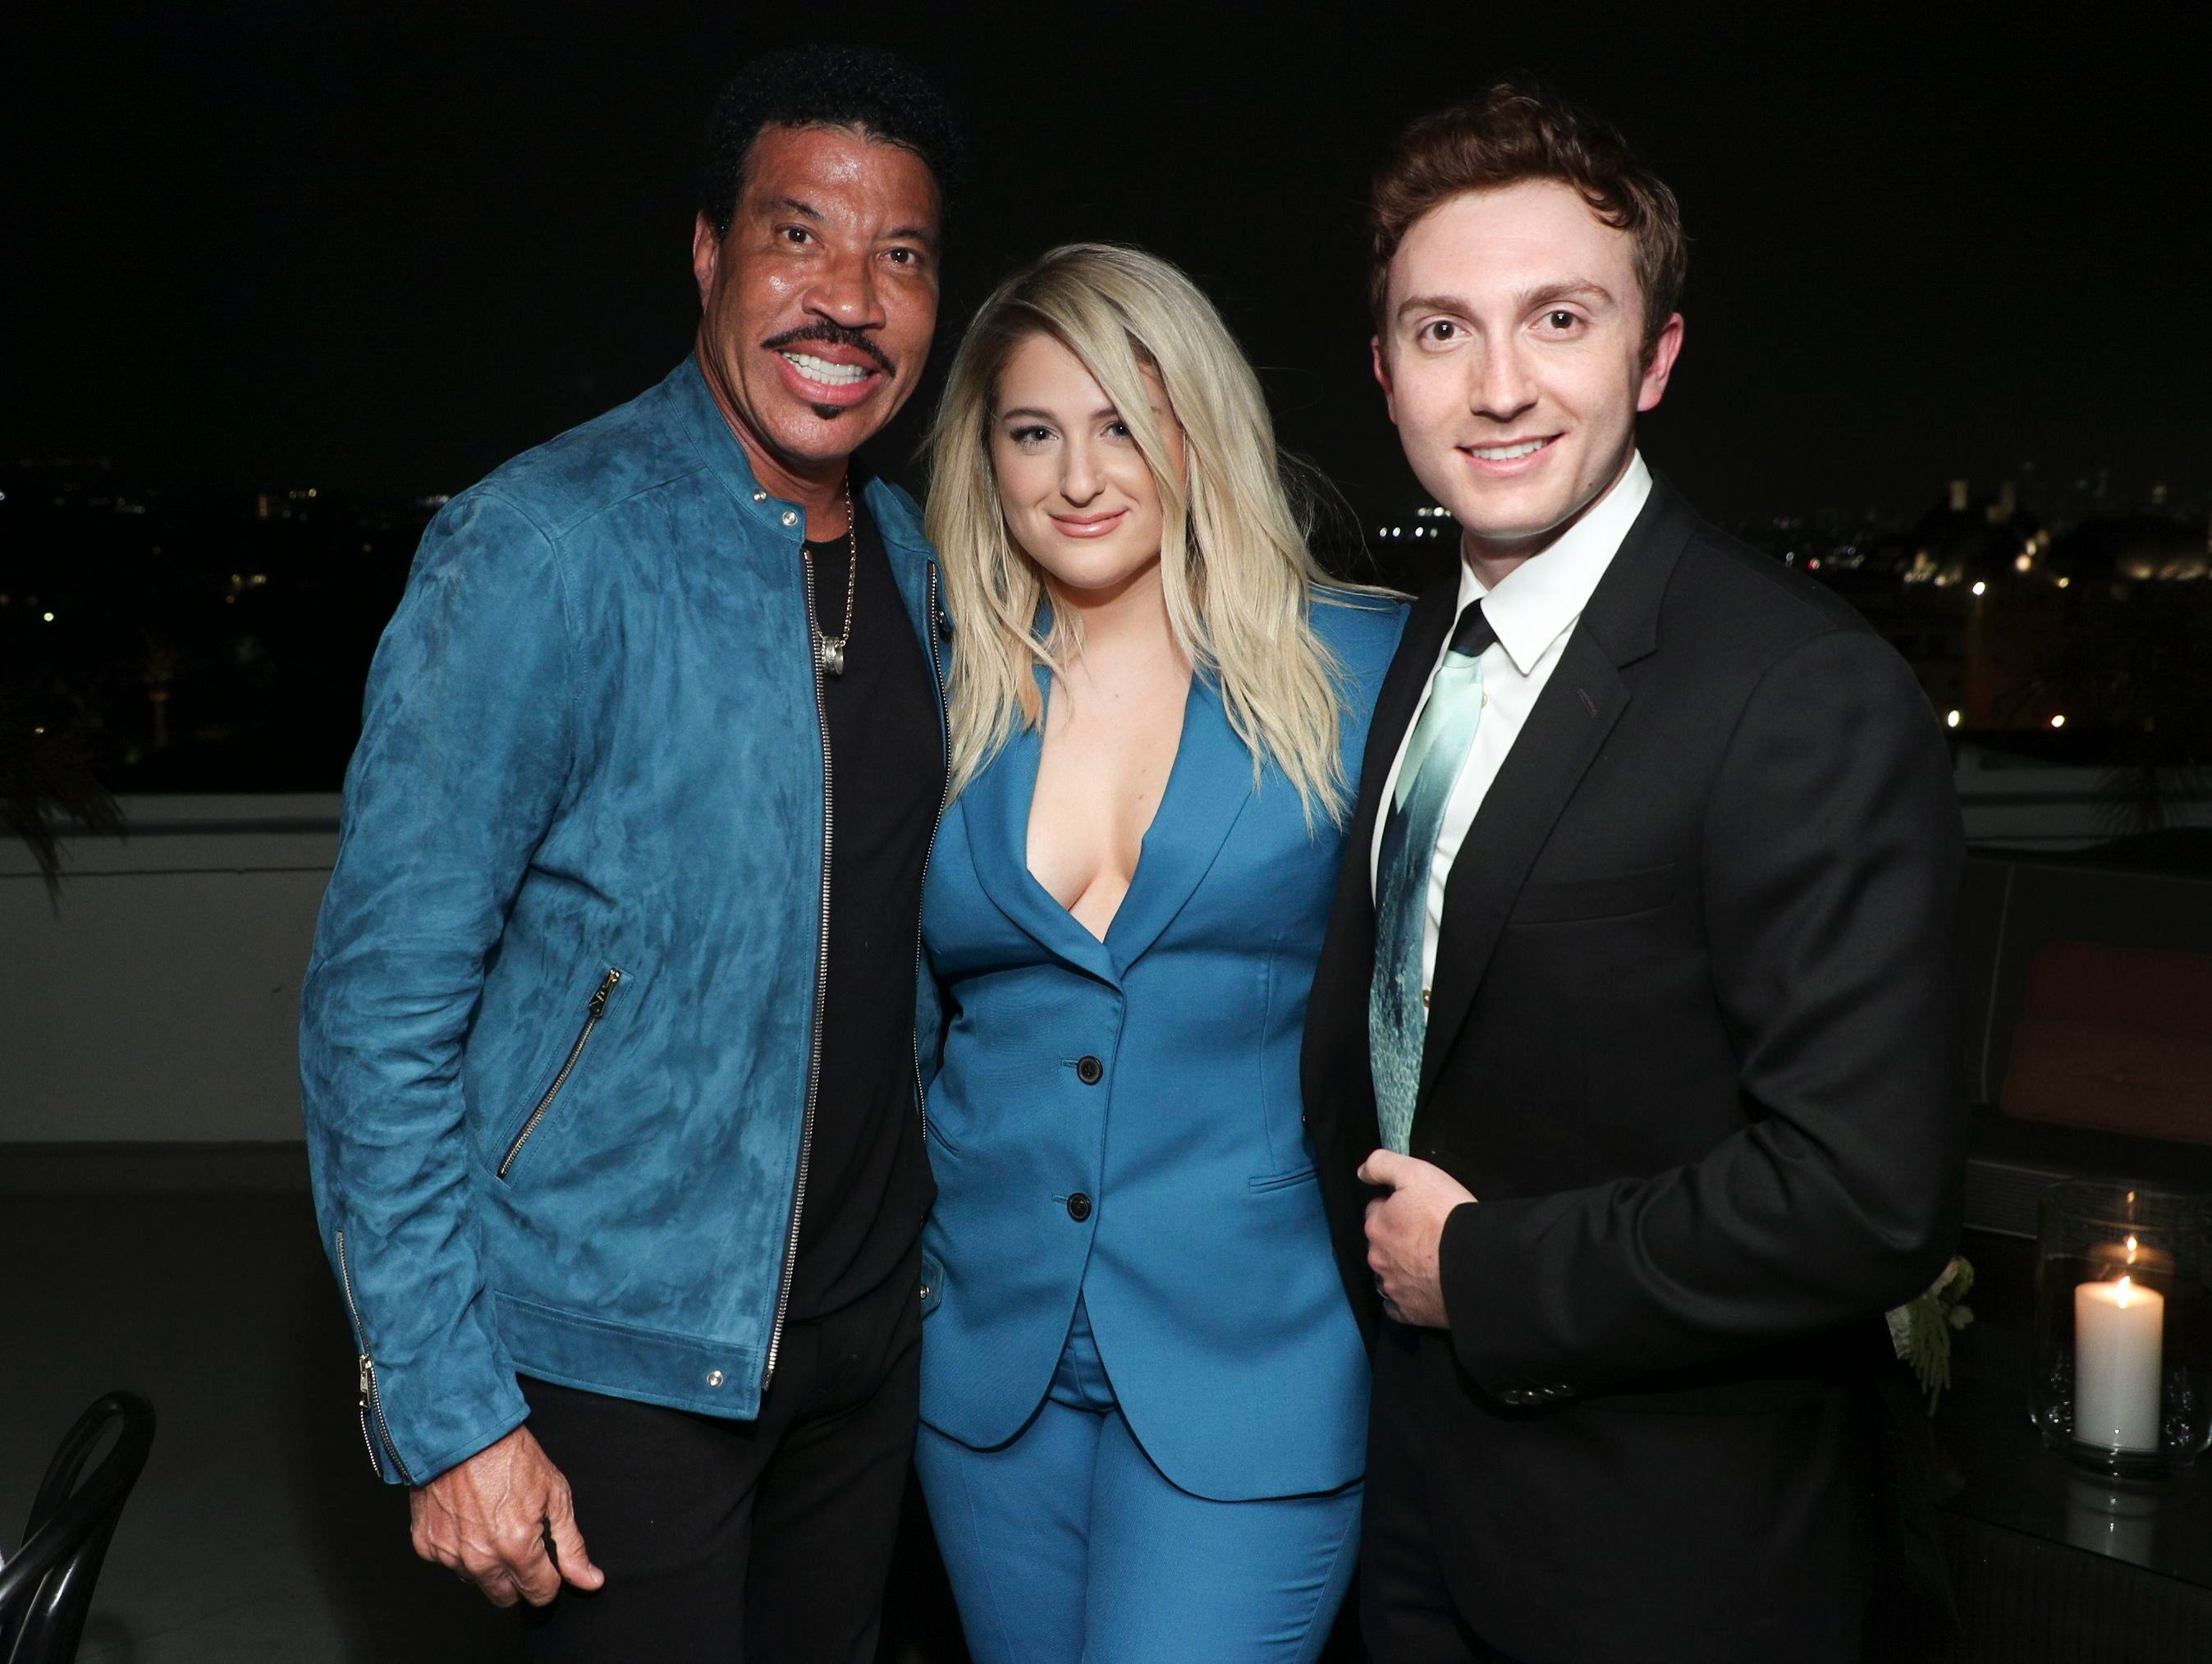 Lionel Richie, Meghan Trainor and Daryl SabaraPaul Smith honors John Legend, Cocktails, Chateau Marmont, Los Angeles, USA - 14 May 2019